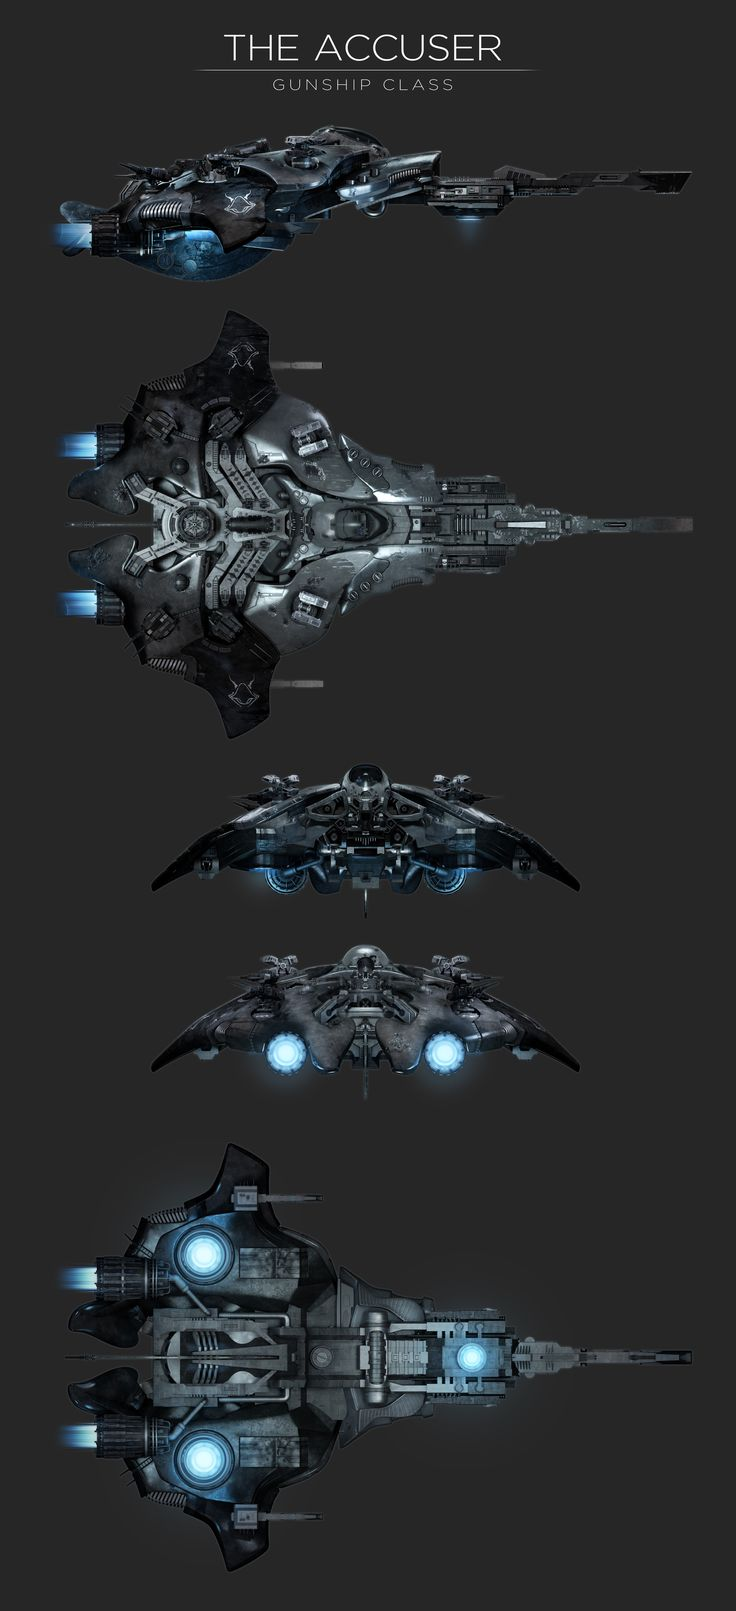 Black themed spaceship conceptual artwork and wallpapers 1 design - Artstation The Accuser Gunship Concept Design Mike Luard